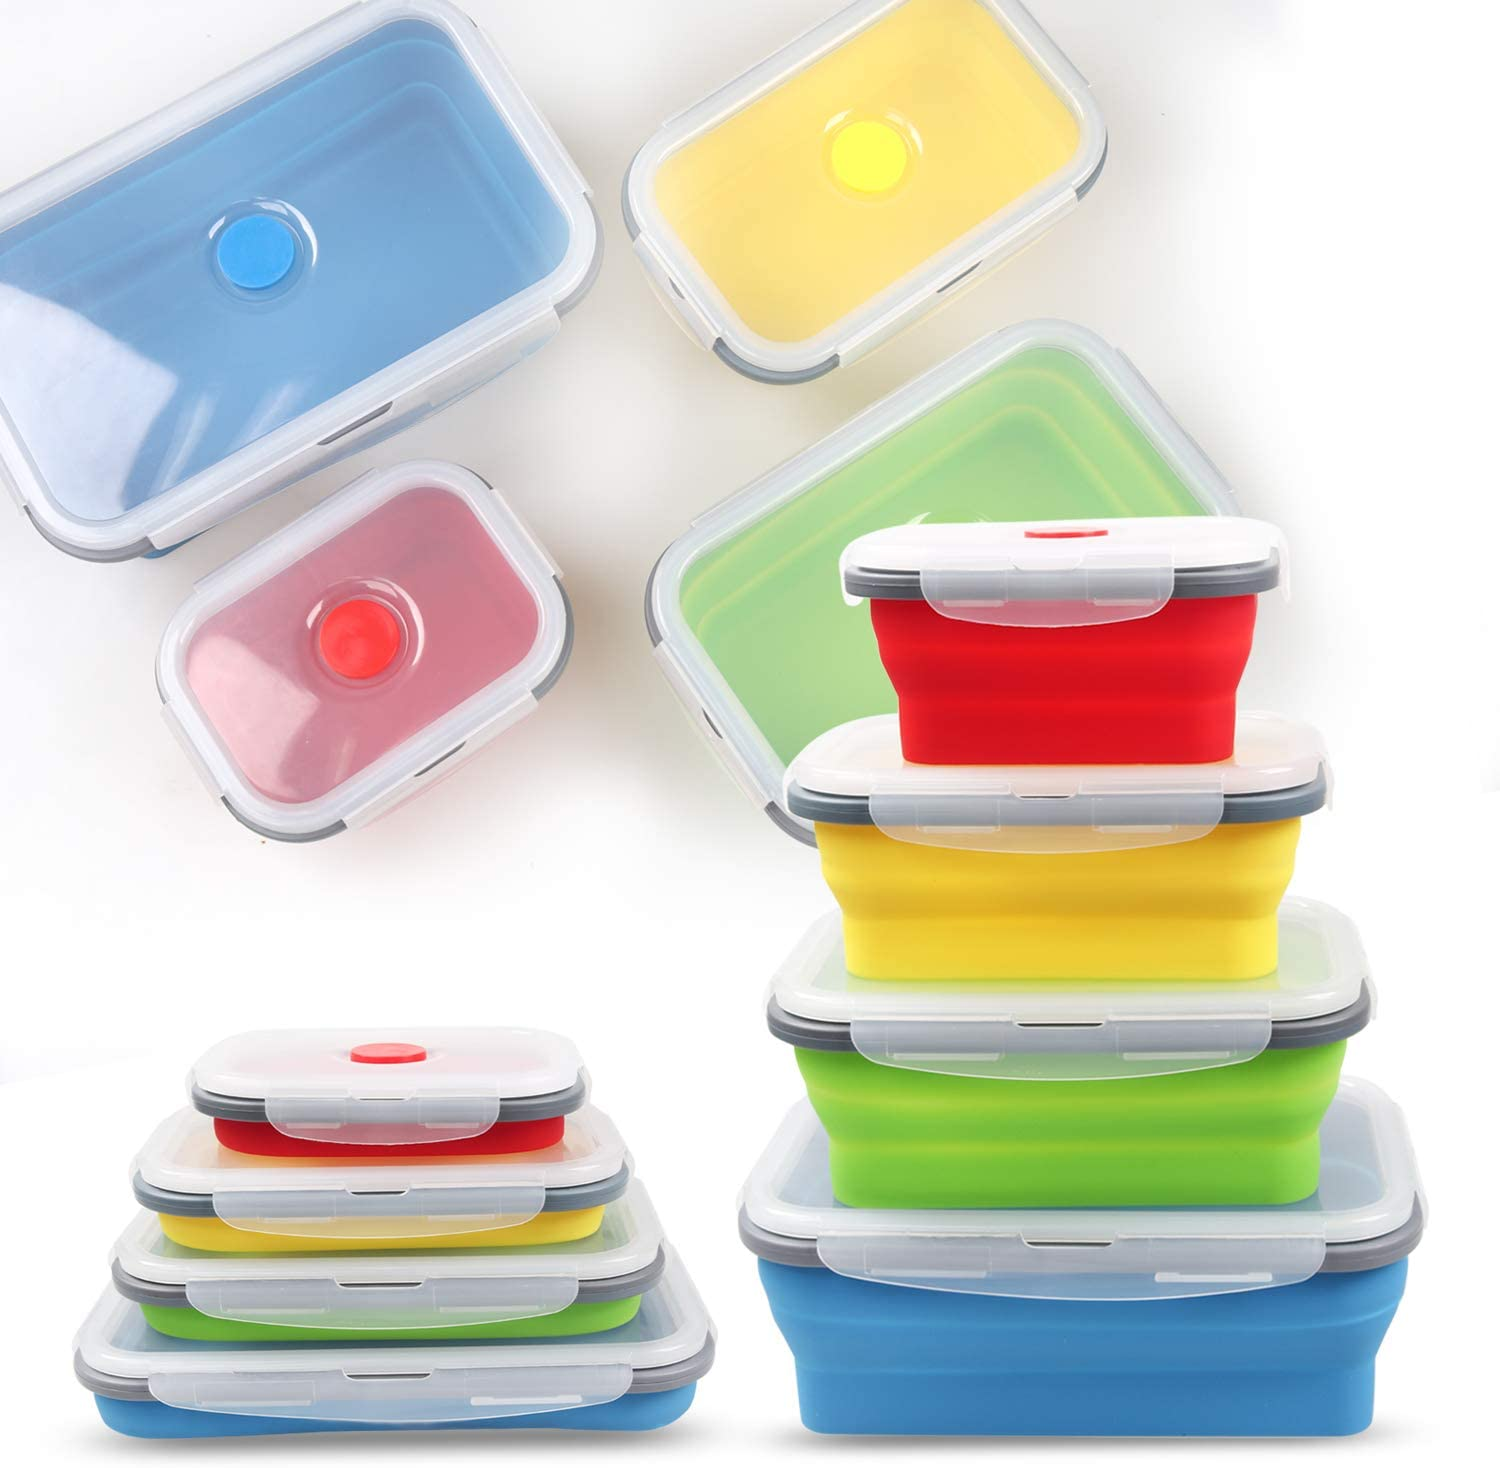 Collapsible Silicone Food Storage Container, Rectangle with Lids Prep Lunch Container, Portable Bento Lunch Boxes, Easy Cleaning, BPA Free, Microwave, Dishwasher Safe(4 Pack)